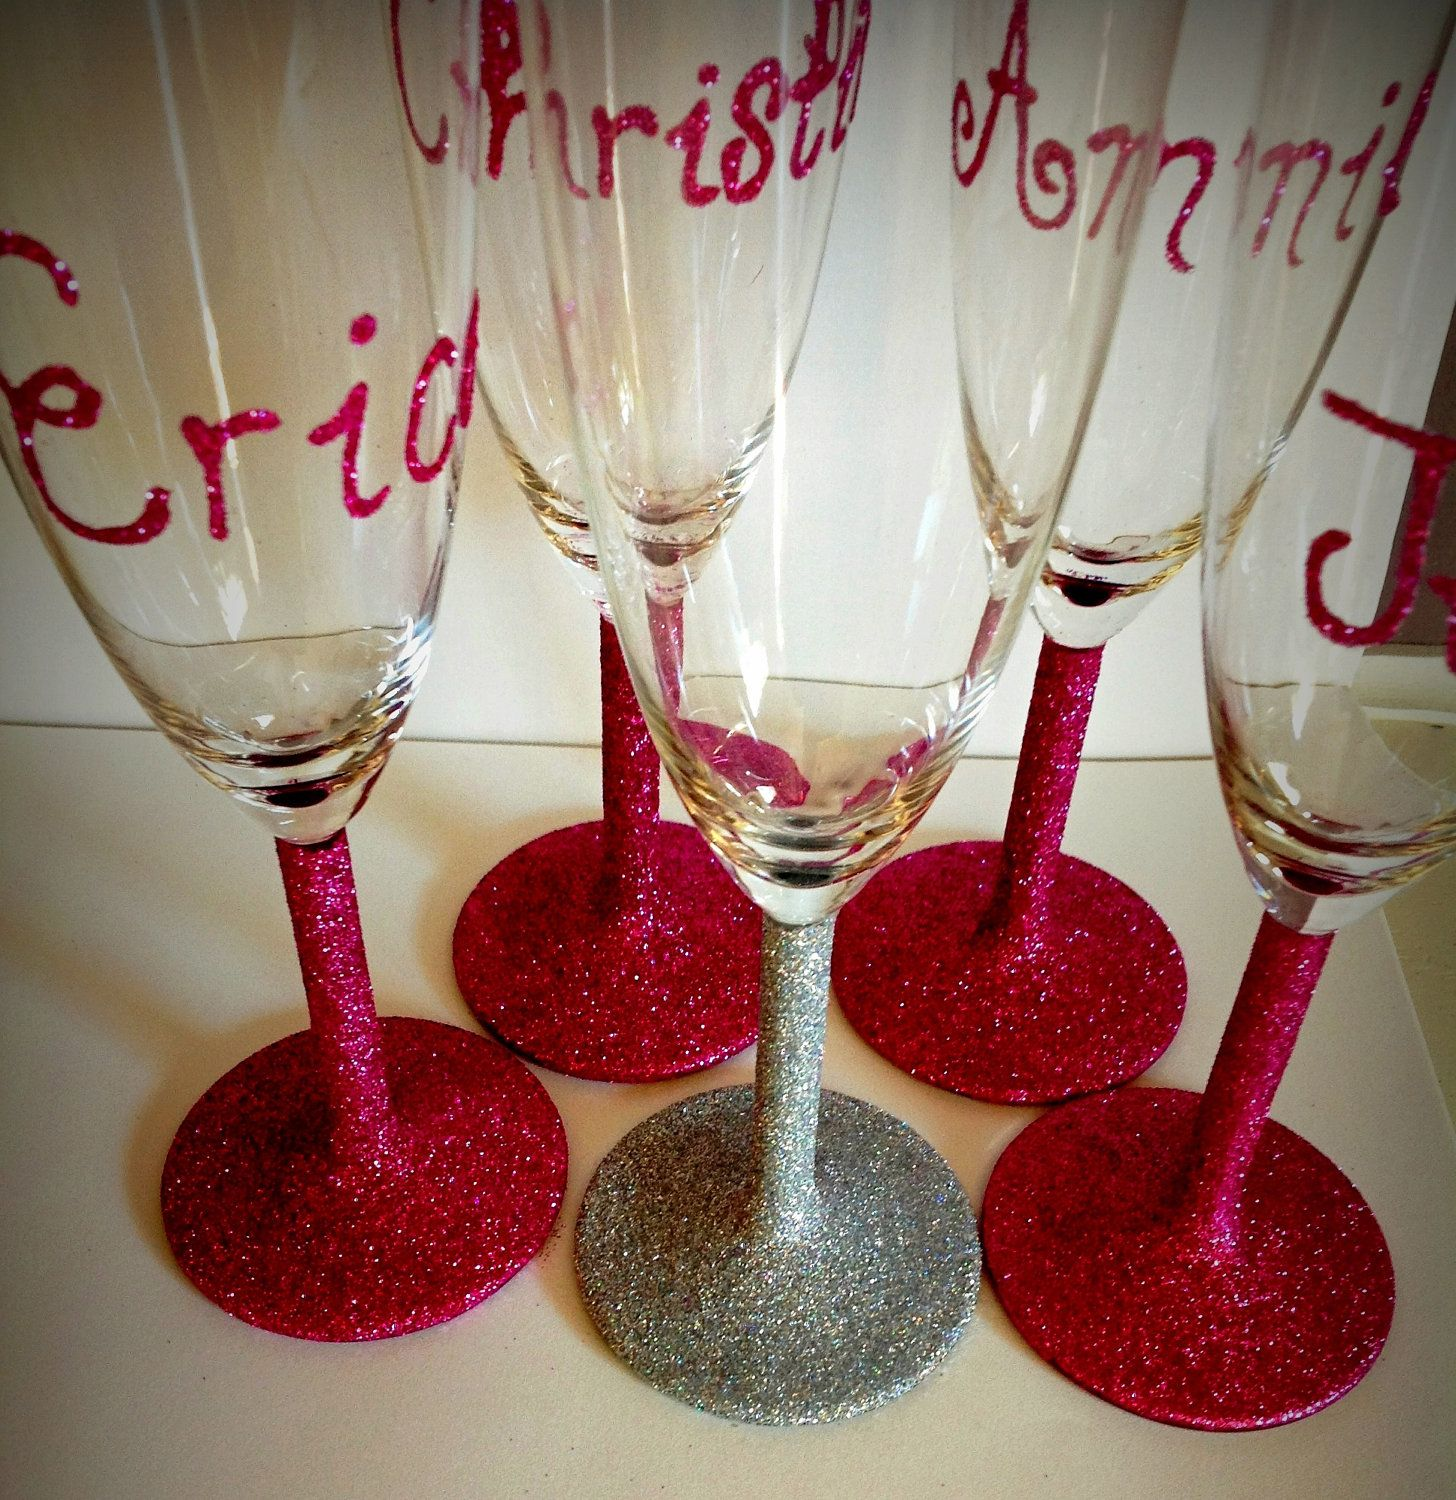 Glittter Champagne Glasses Glitter Champagne Hand Painted Glasses Champagne Lovers